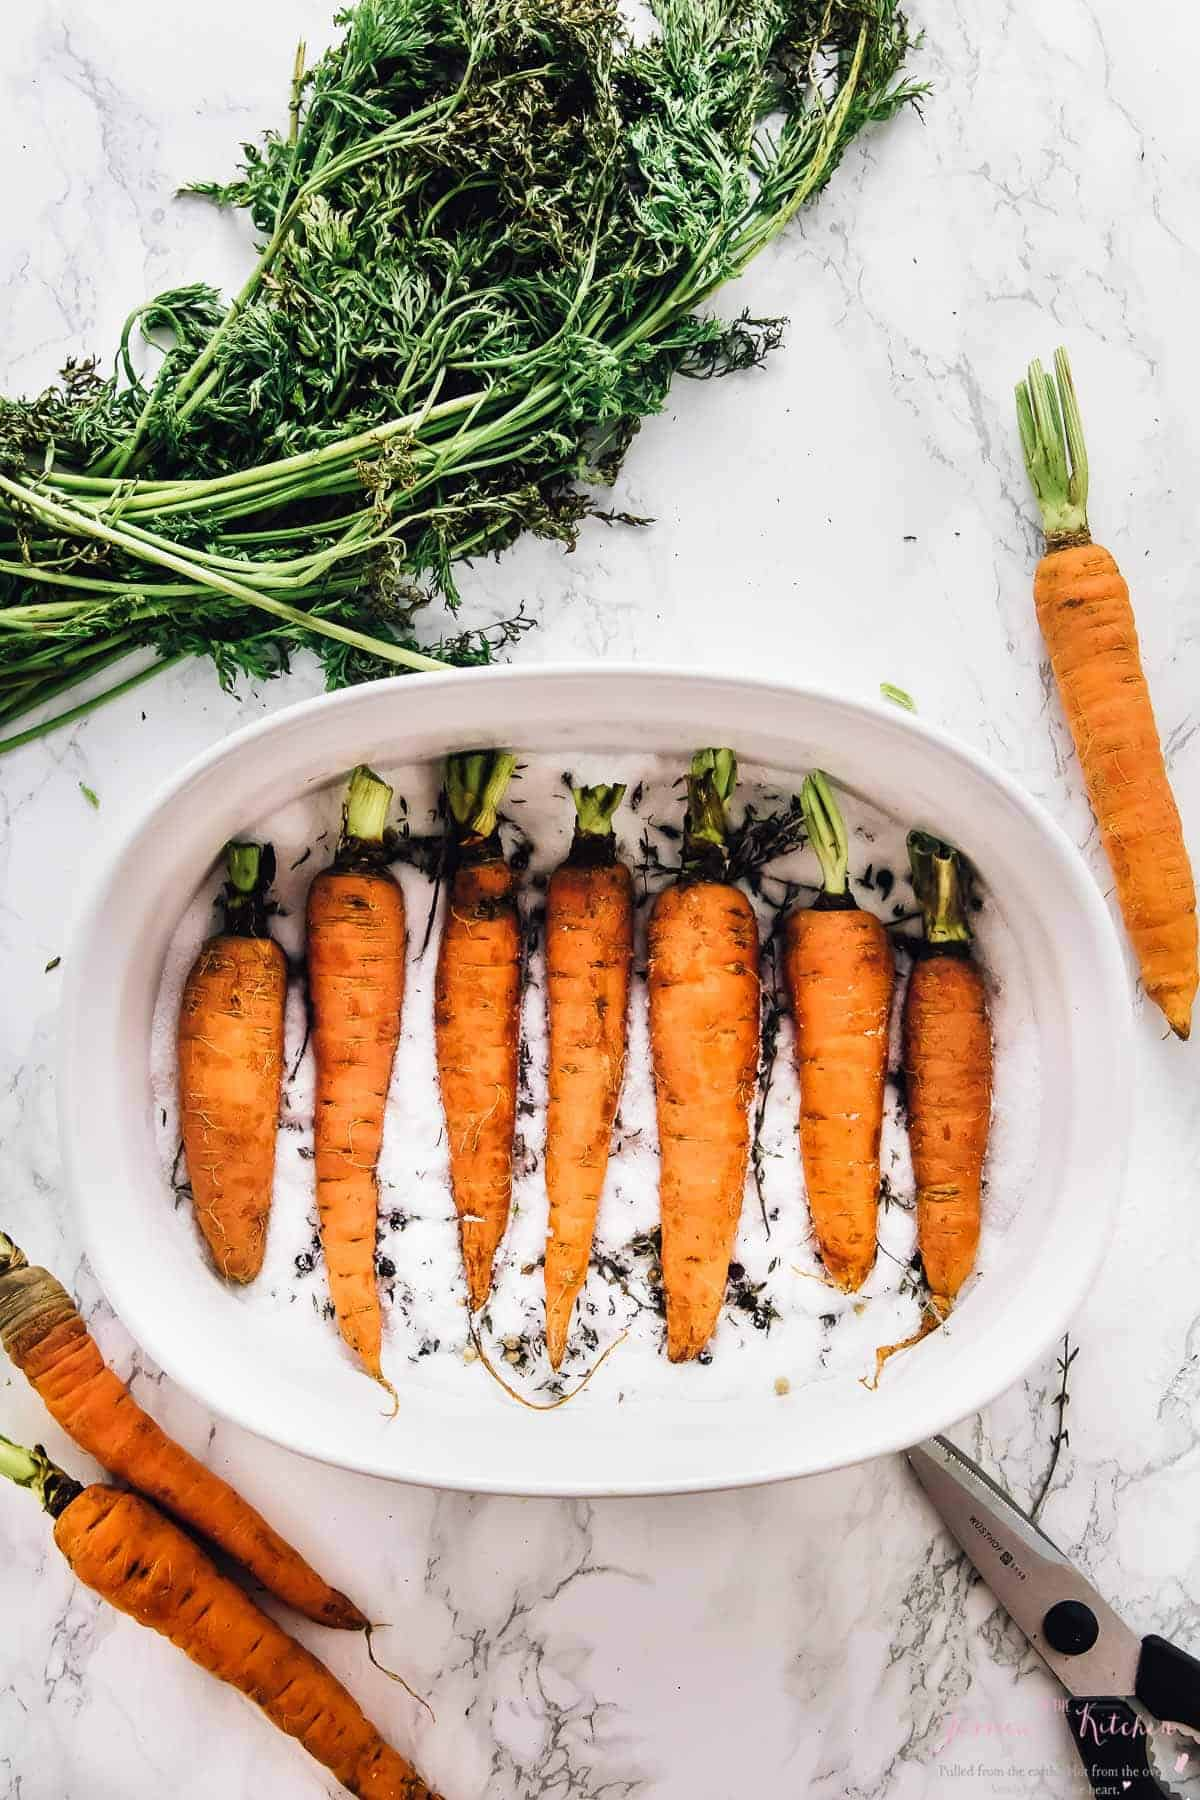 These Salt Roasted Carrots are a MUST try! The roasted carrots are perfectly seasoned, beautifully caramelised, and taste absolutely divine! So easy, and you can roast more veggies in the salt! via https://jessicainthekitchen.com